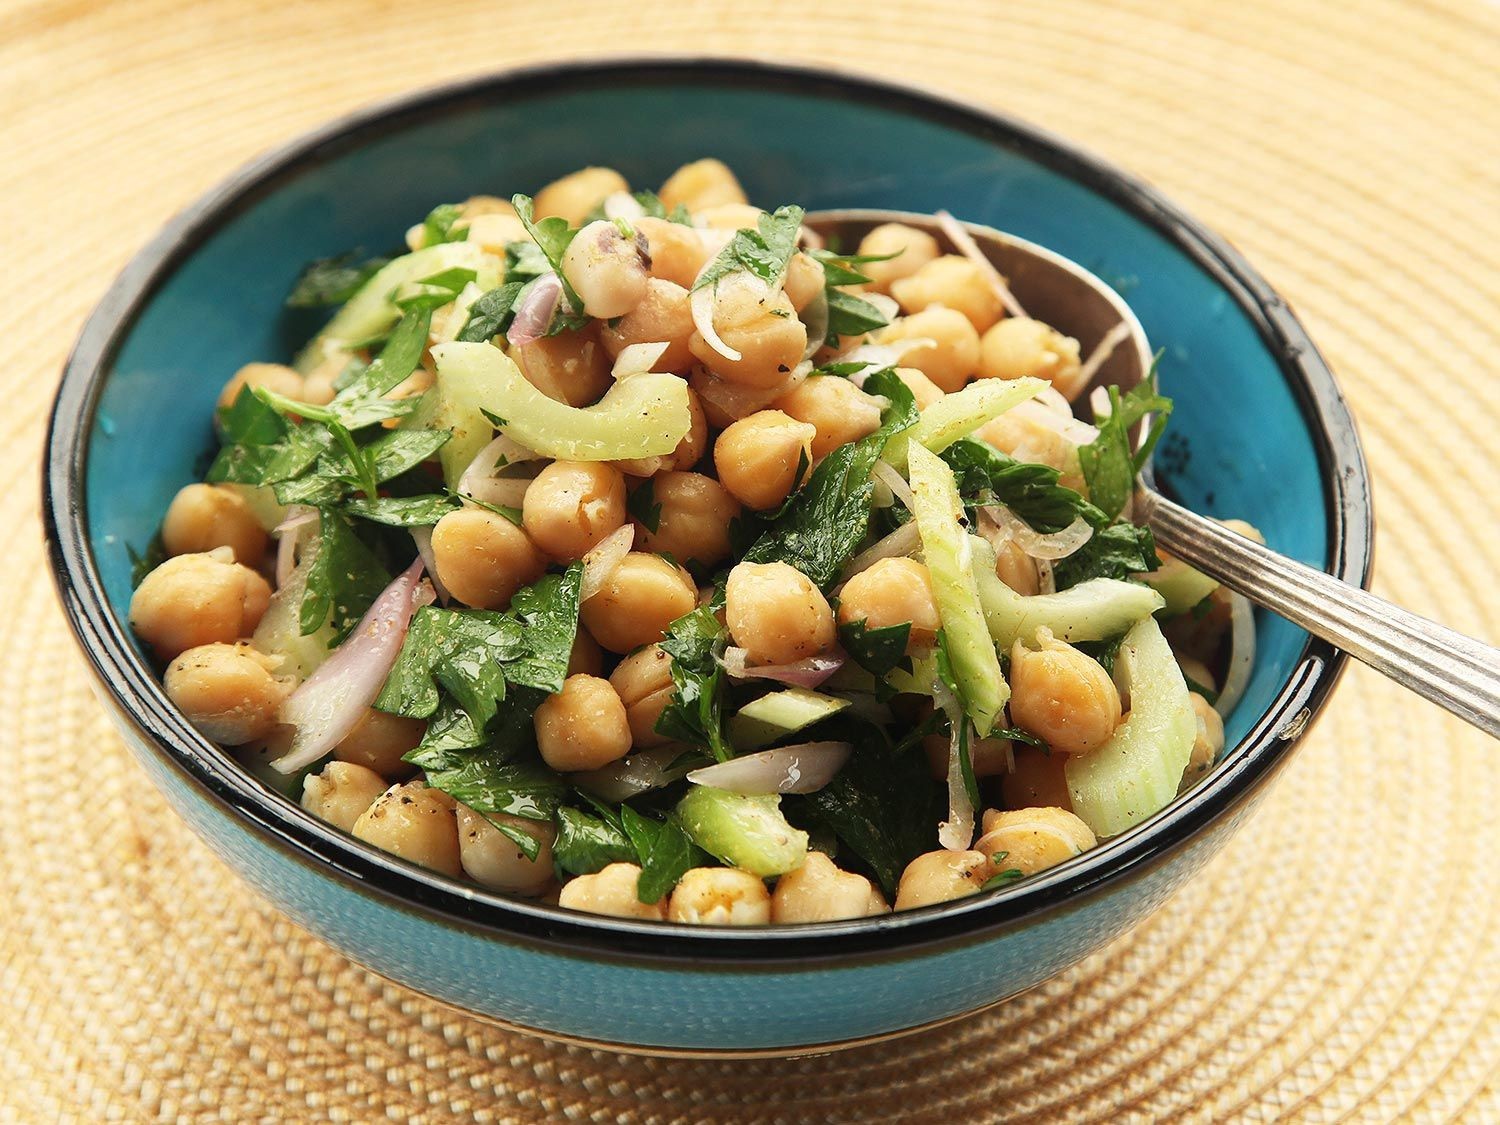 This make-ahead chickpea salad is even better the next day.